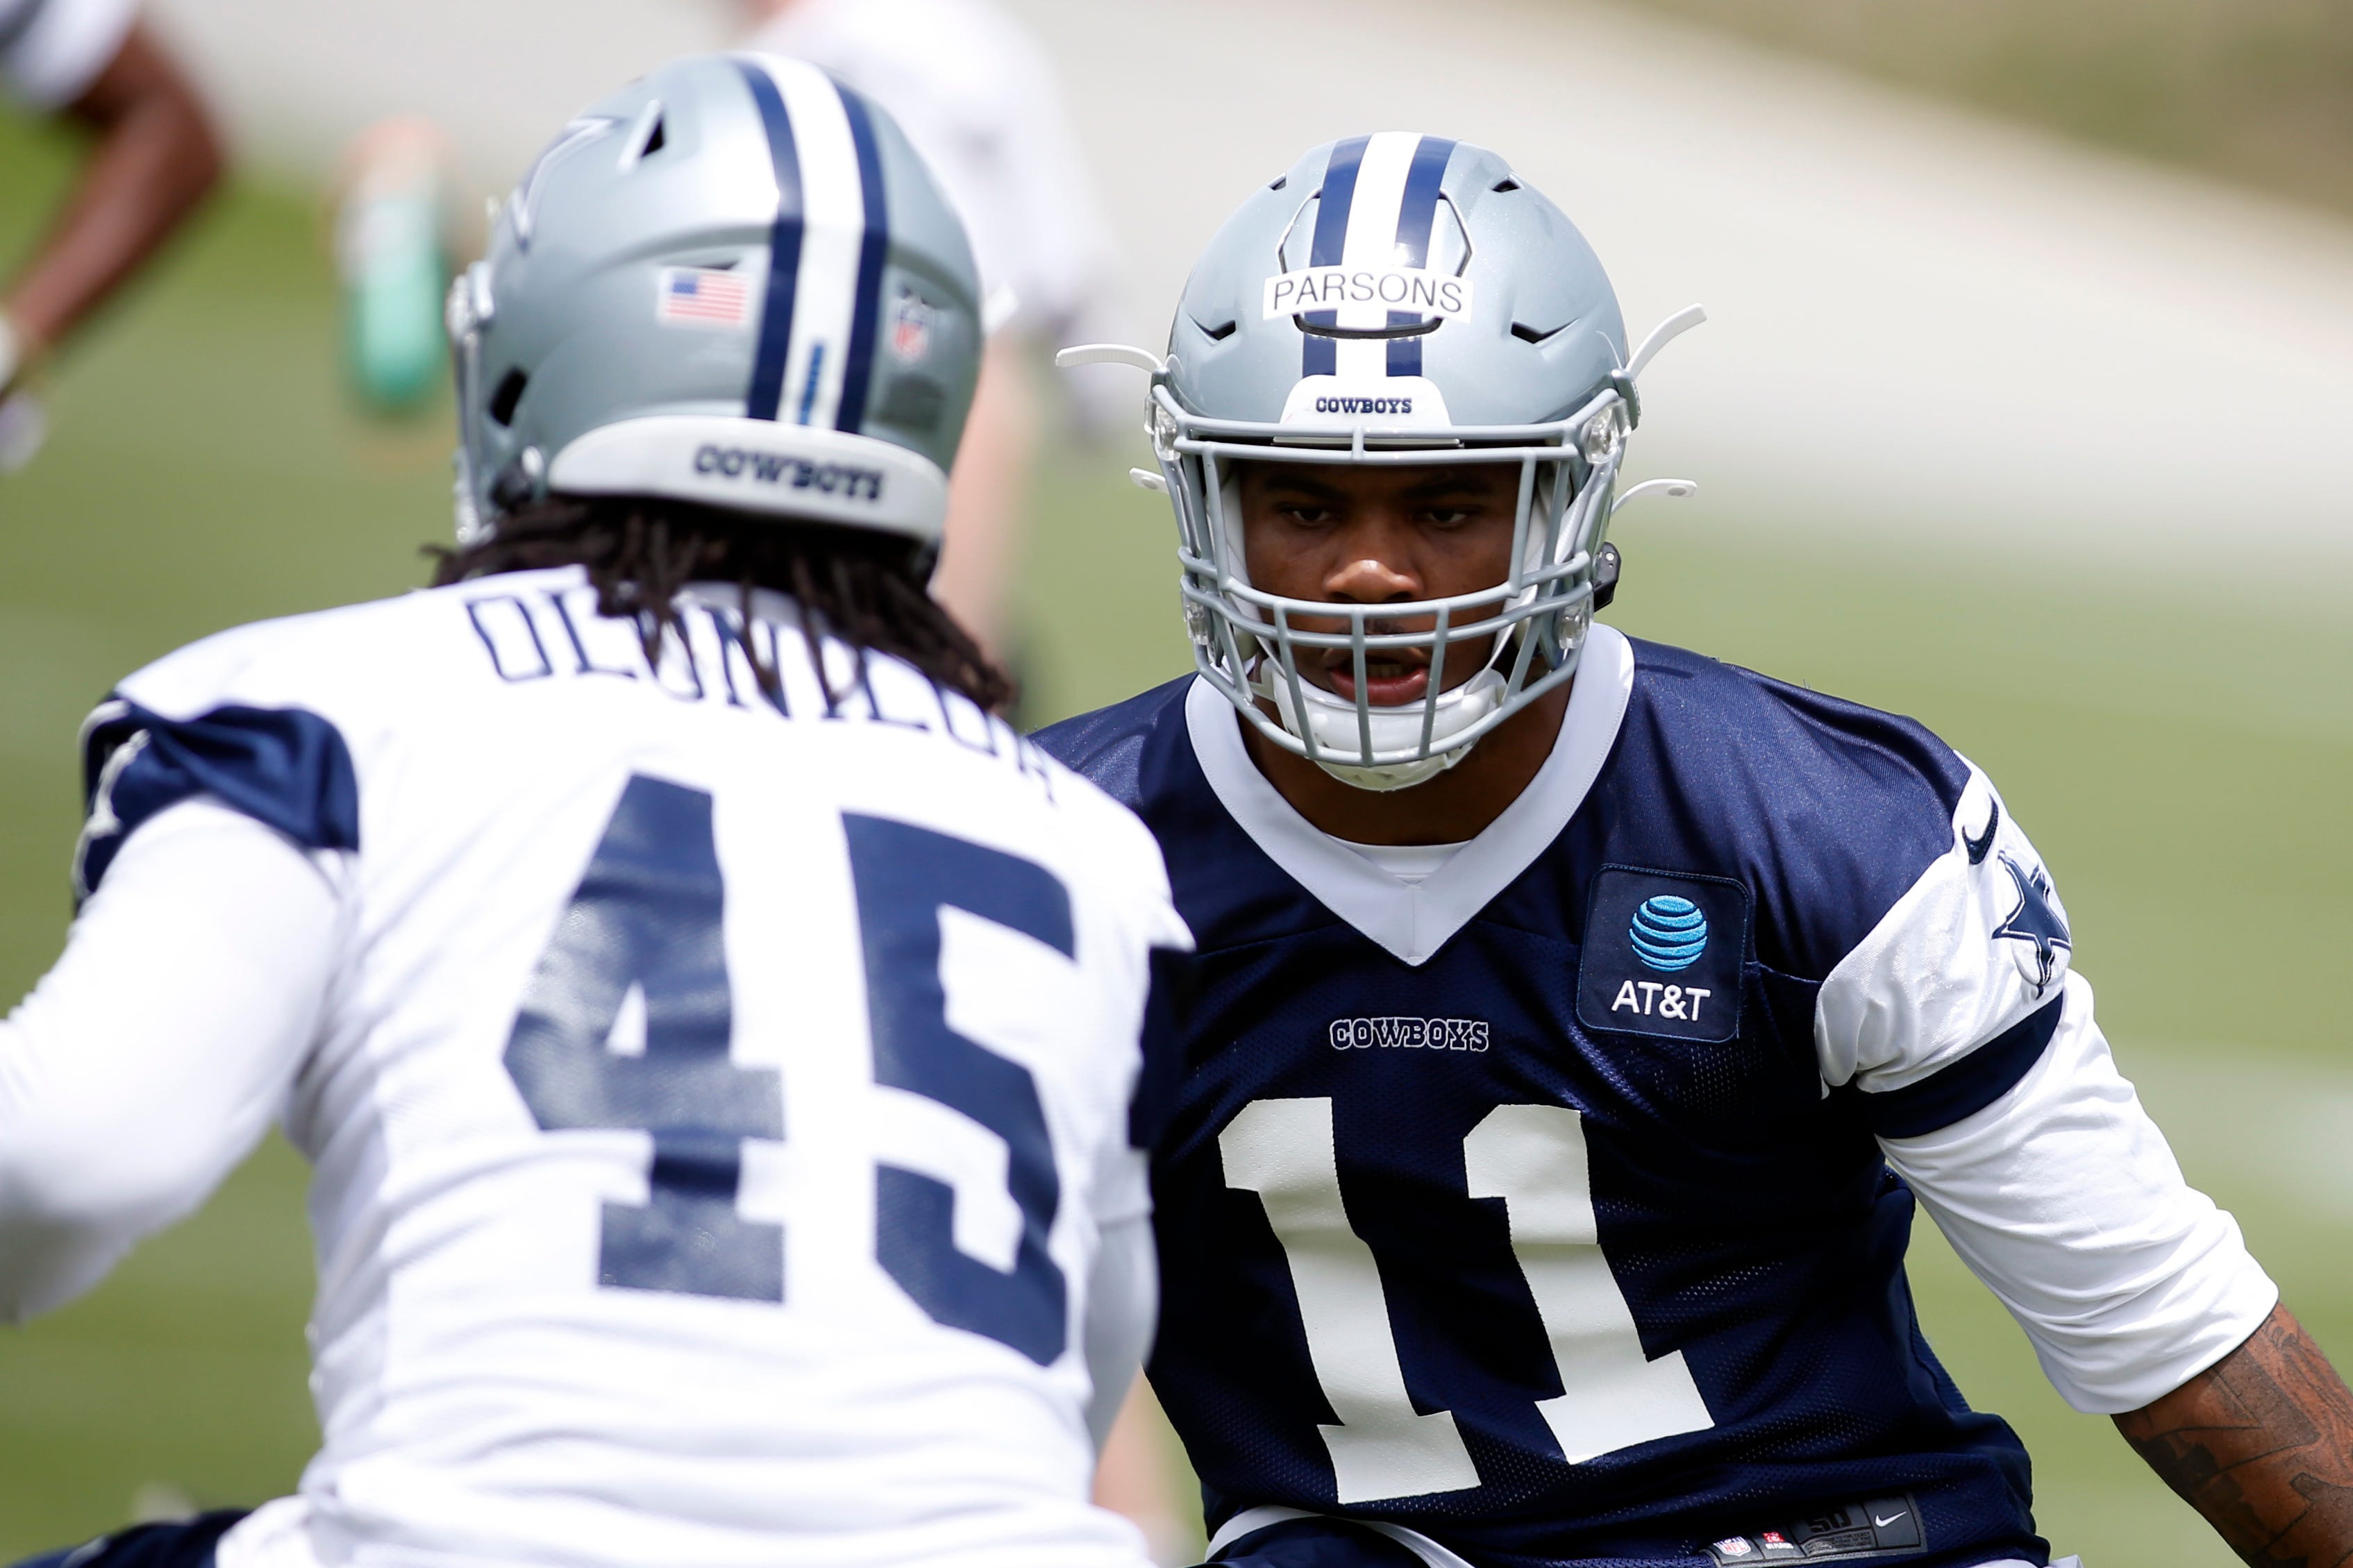 Cowboys minicamp notebook: Micah Parsons embraces lessons from veterans ... and beats one at chess